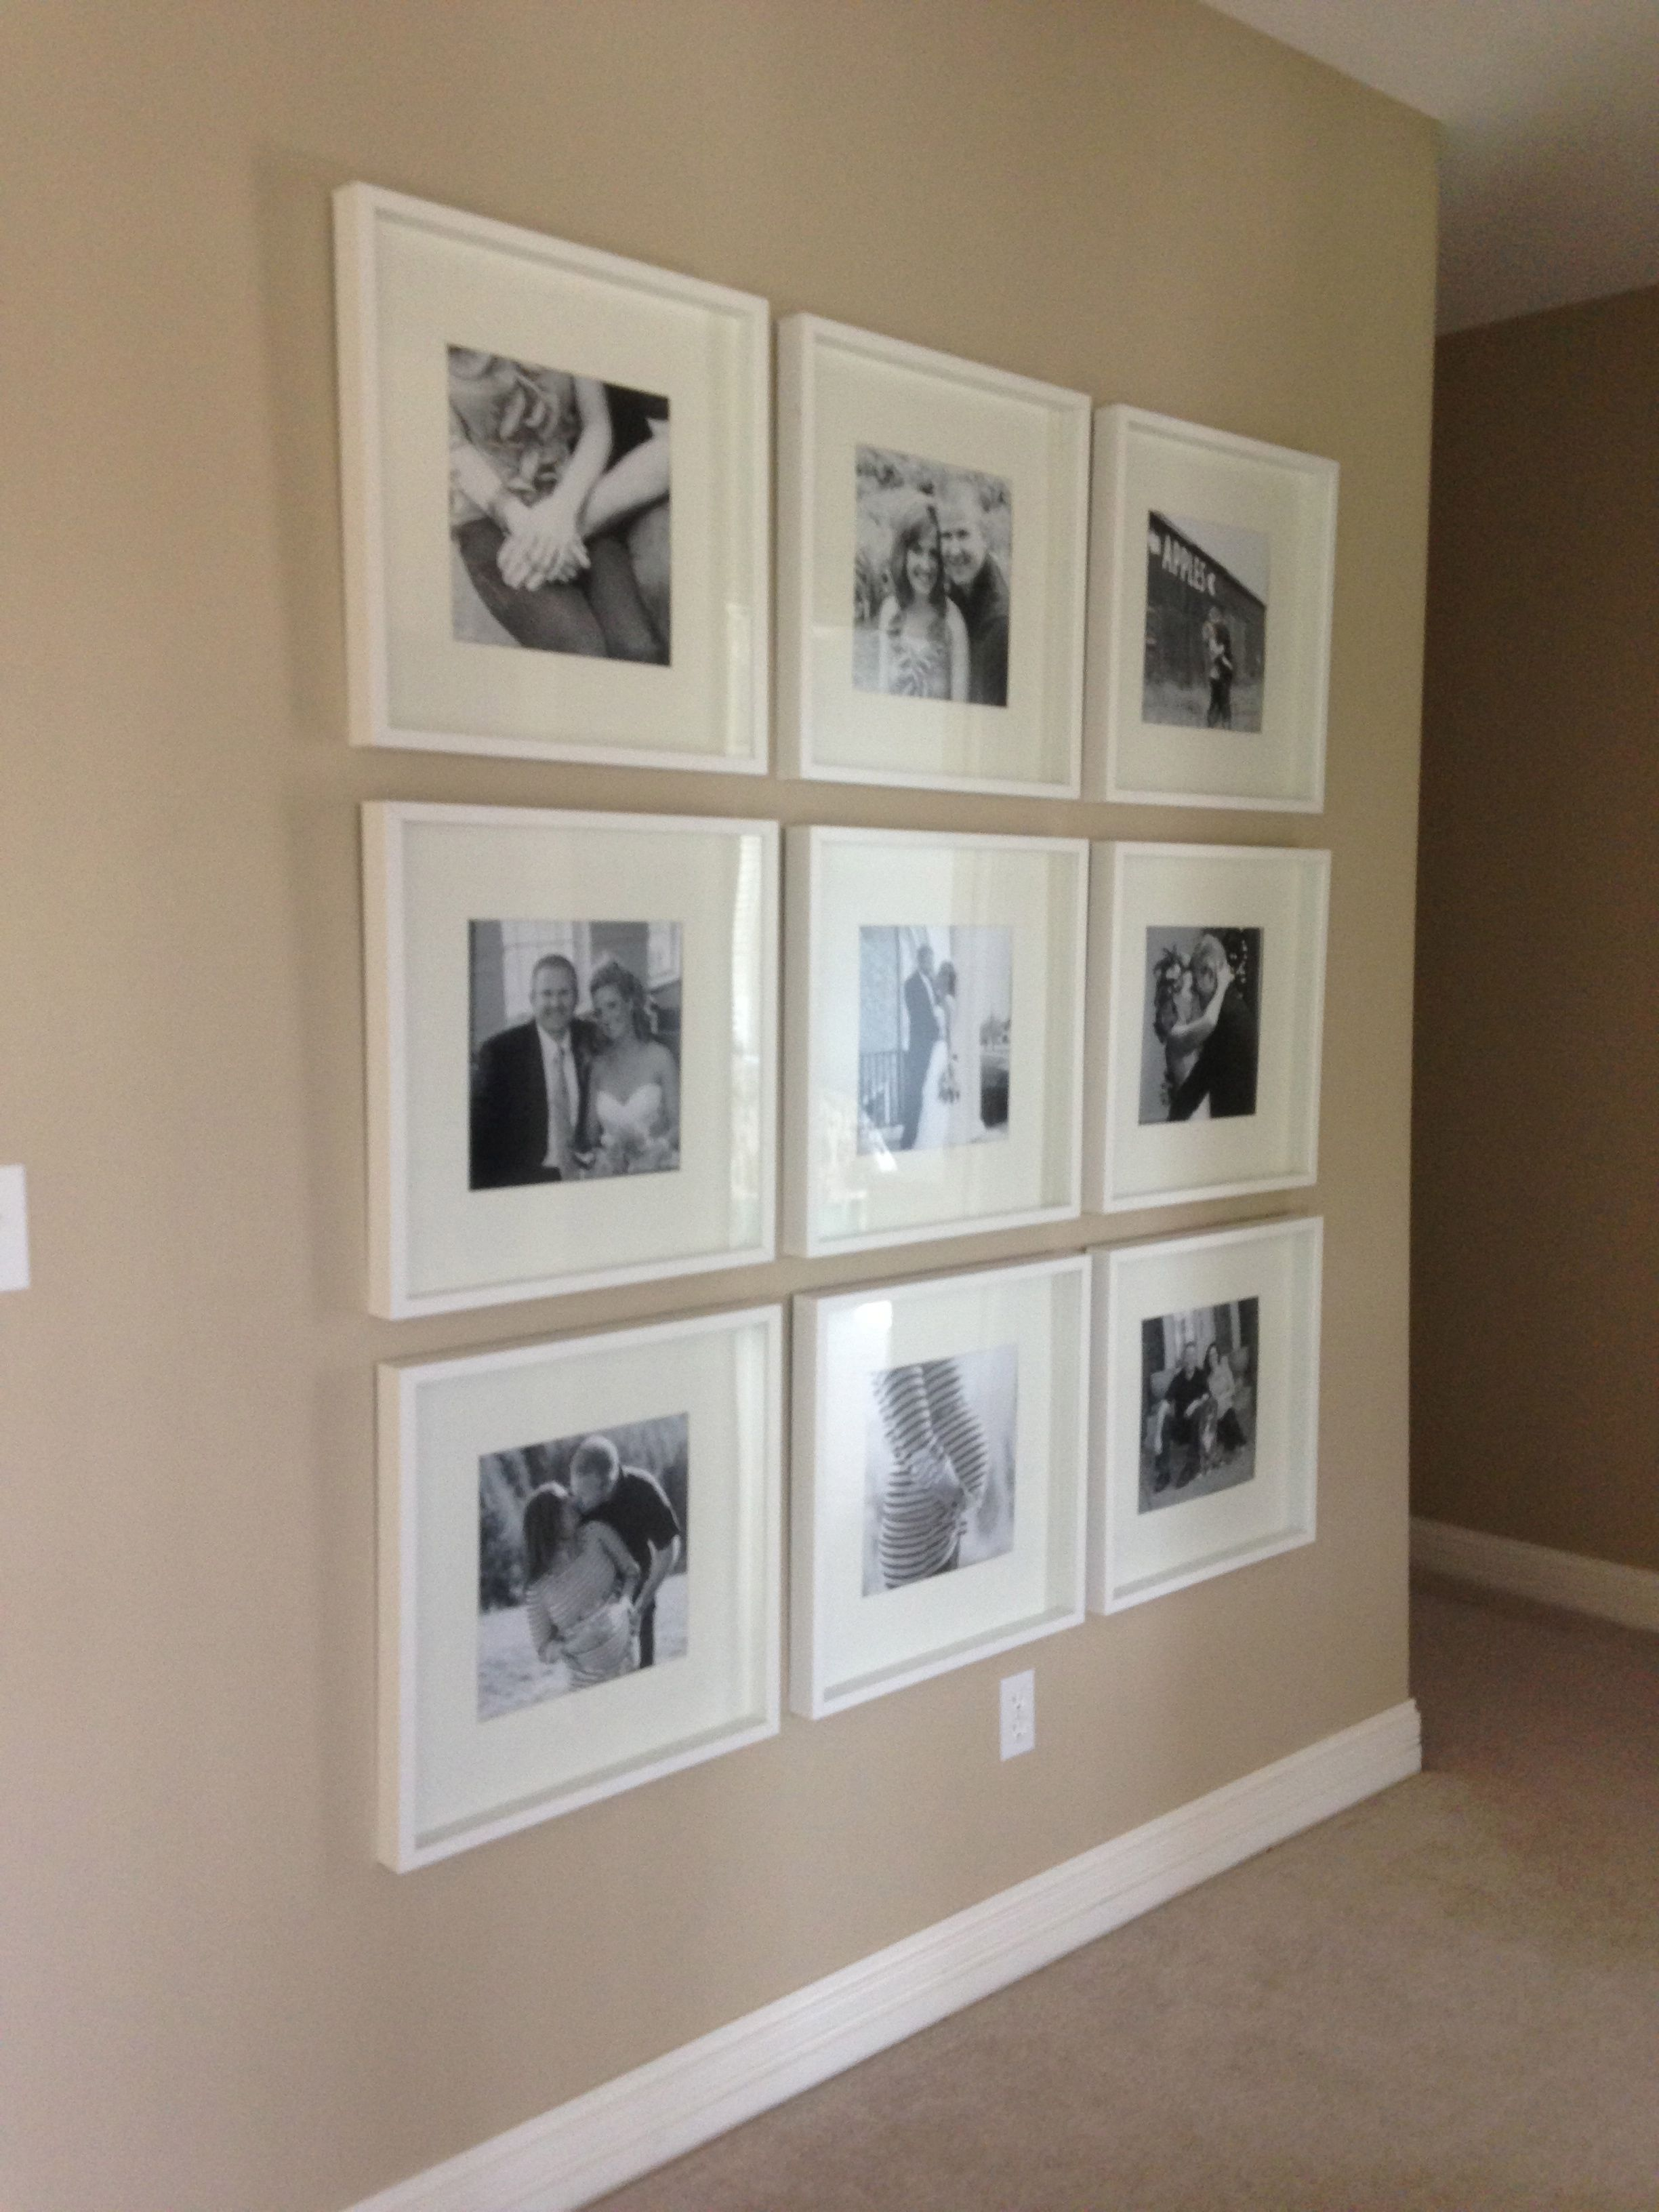 Black And White Photo Wall With Ikea Frames Chronological Order Plan On Incorporating Newborn Family Photos In The Coming Months